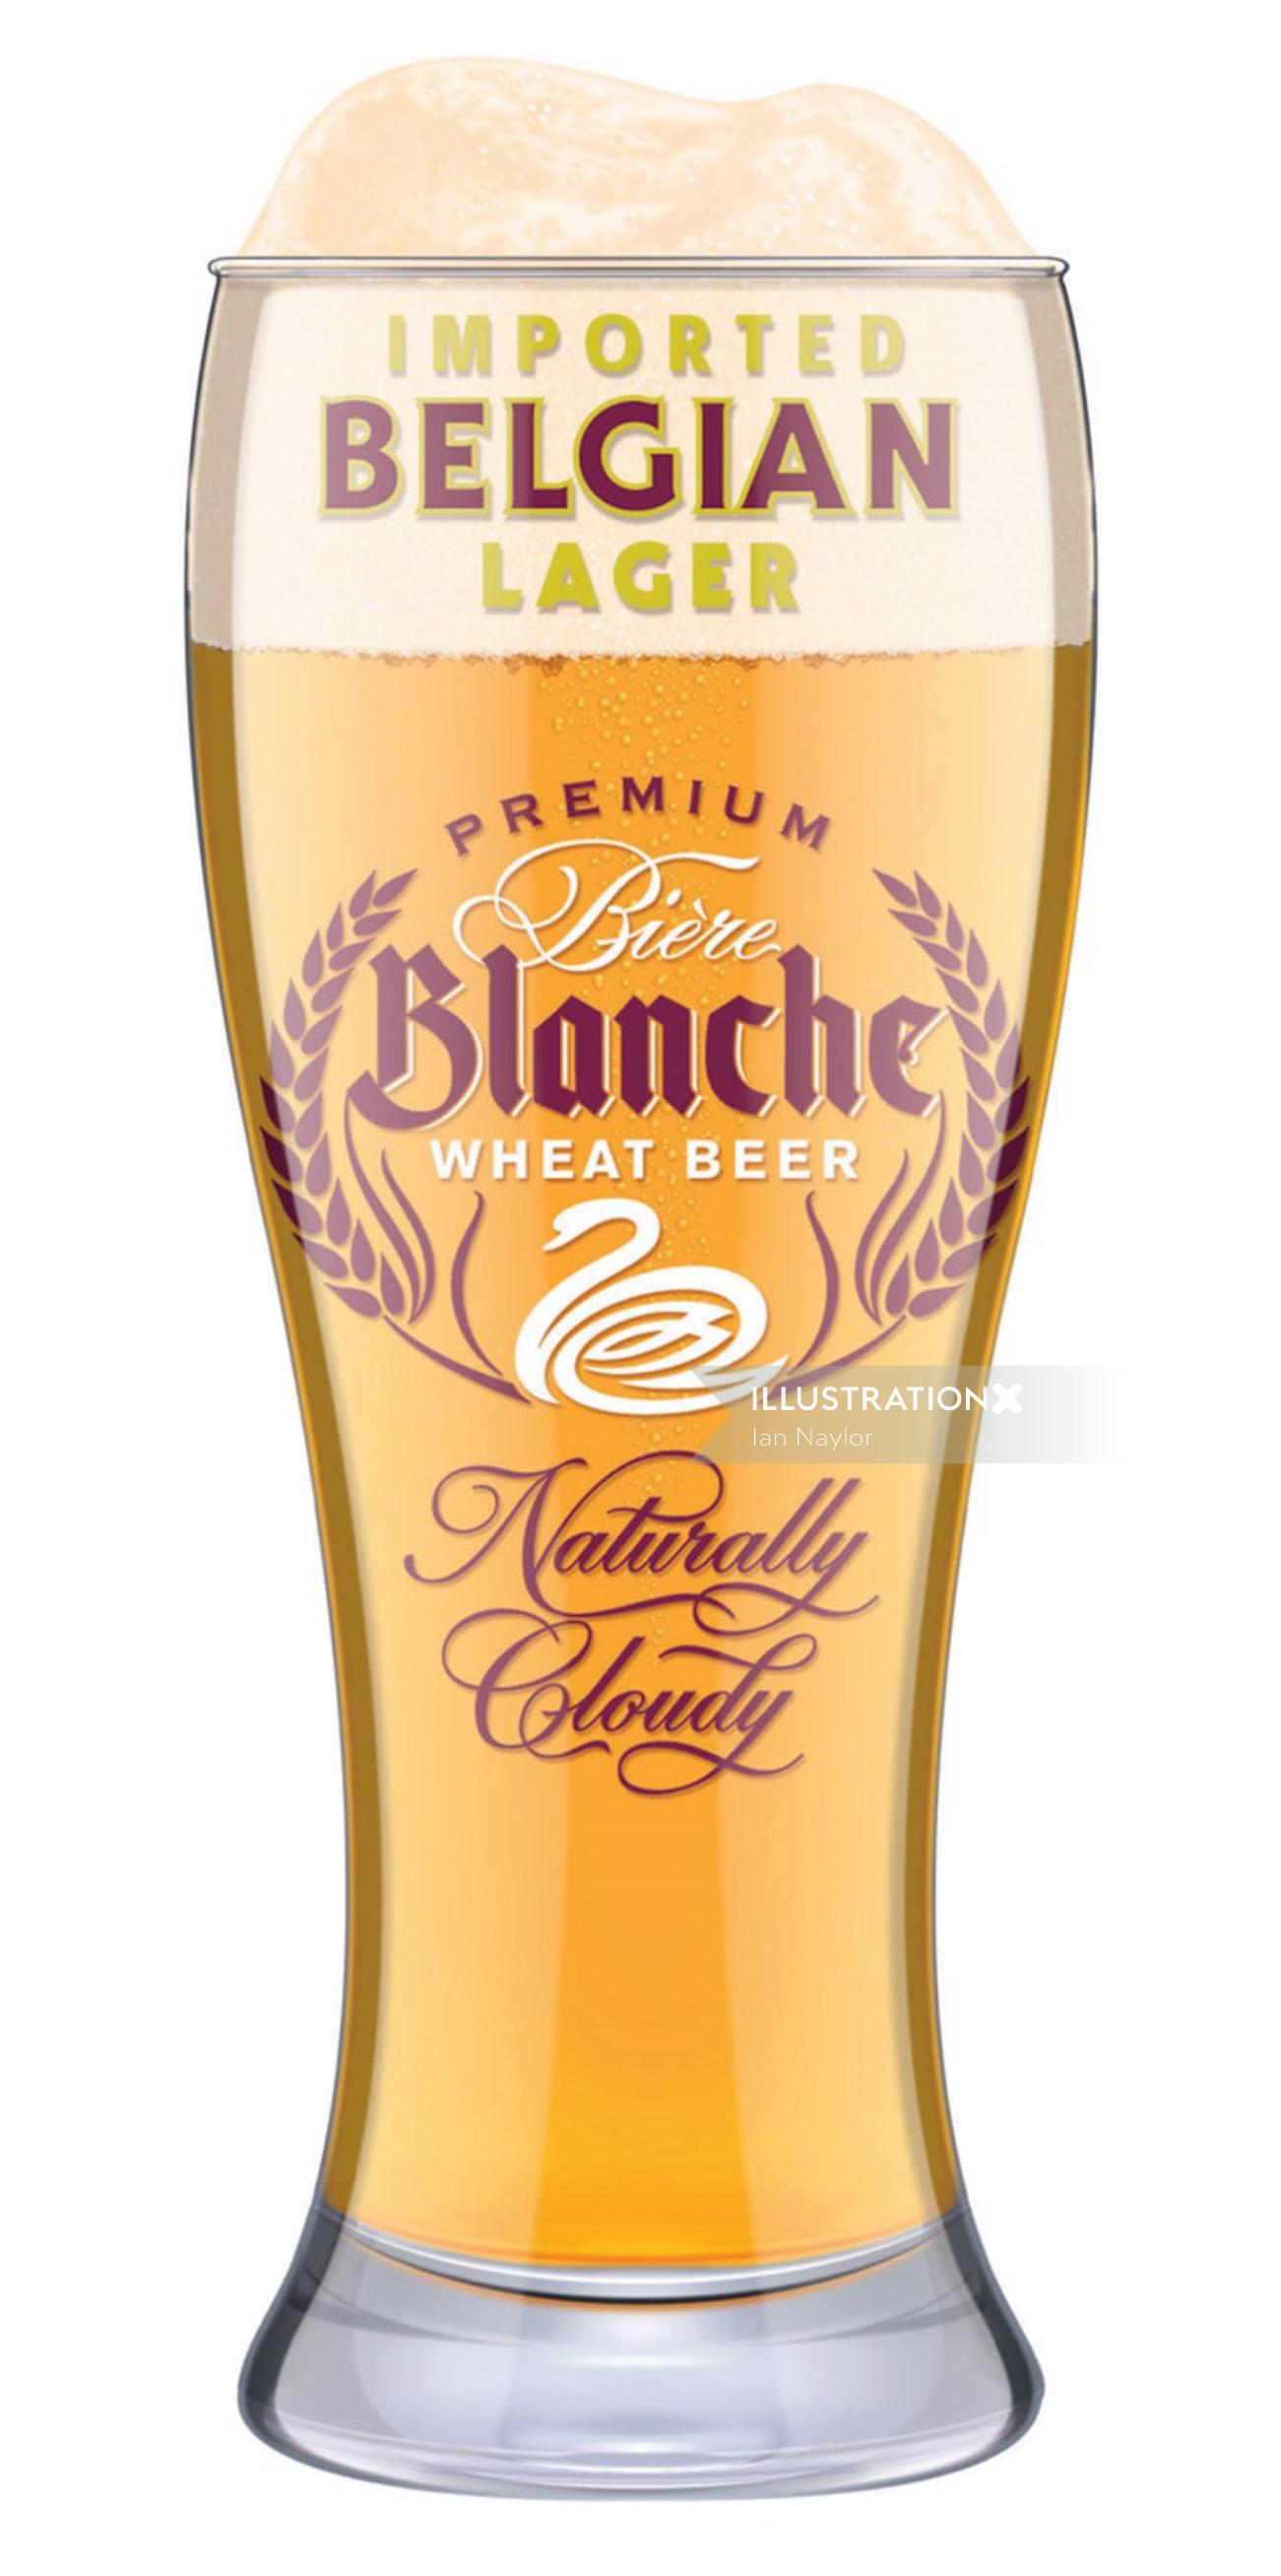 Graphic design of Blanche wheat beer